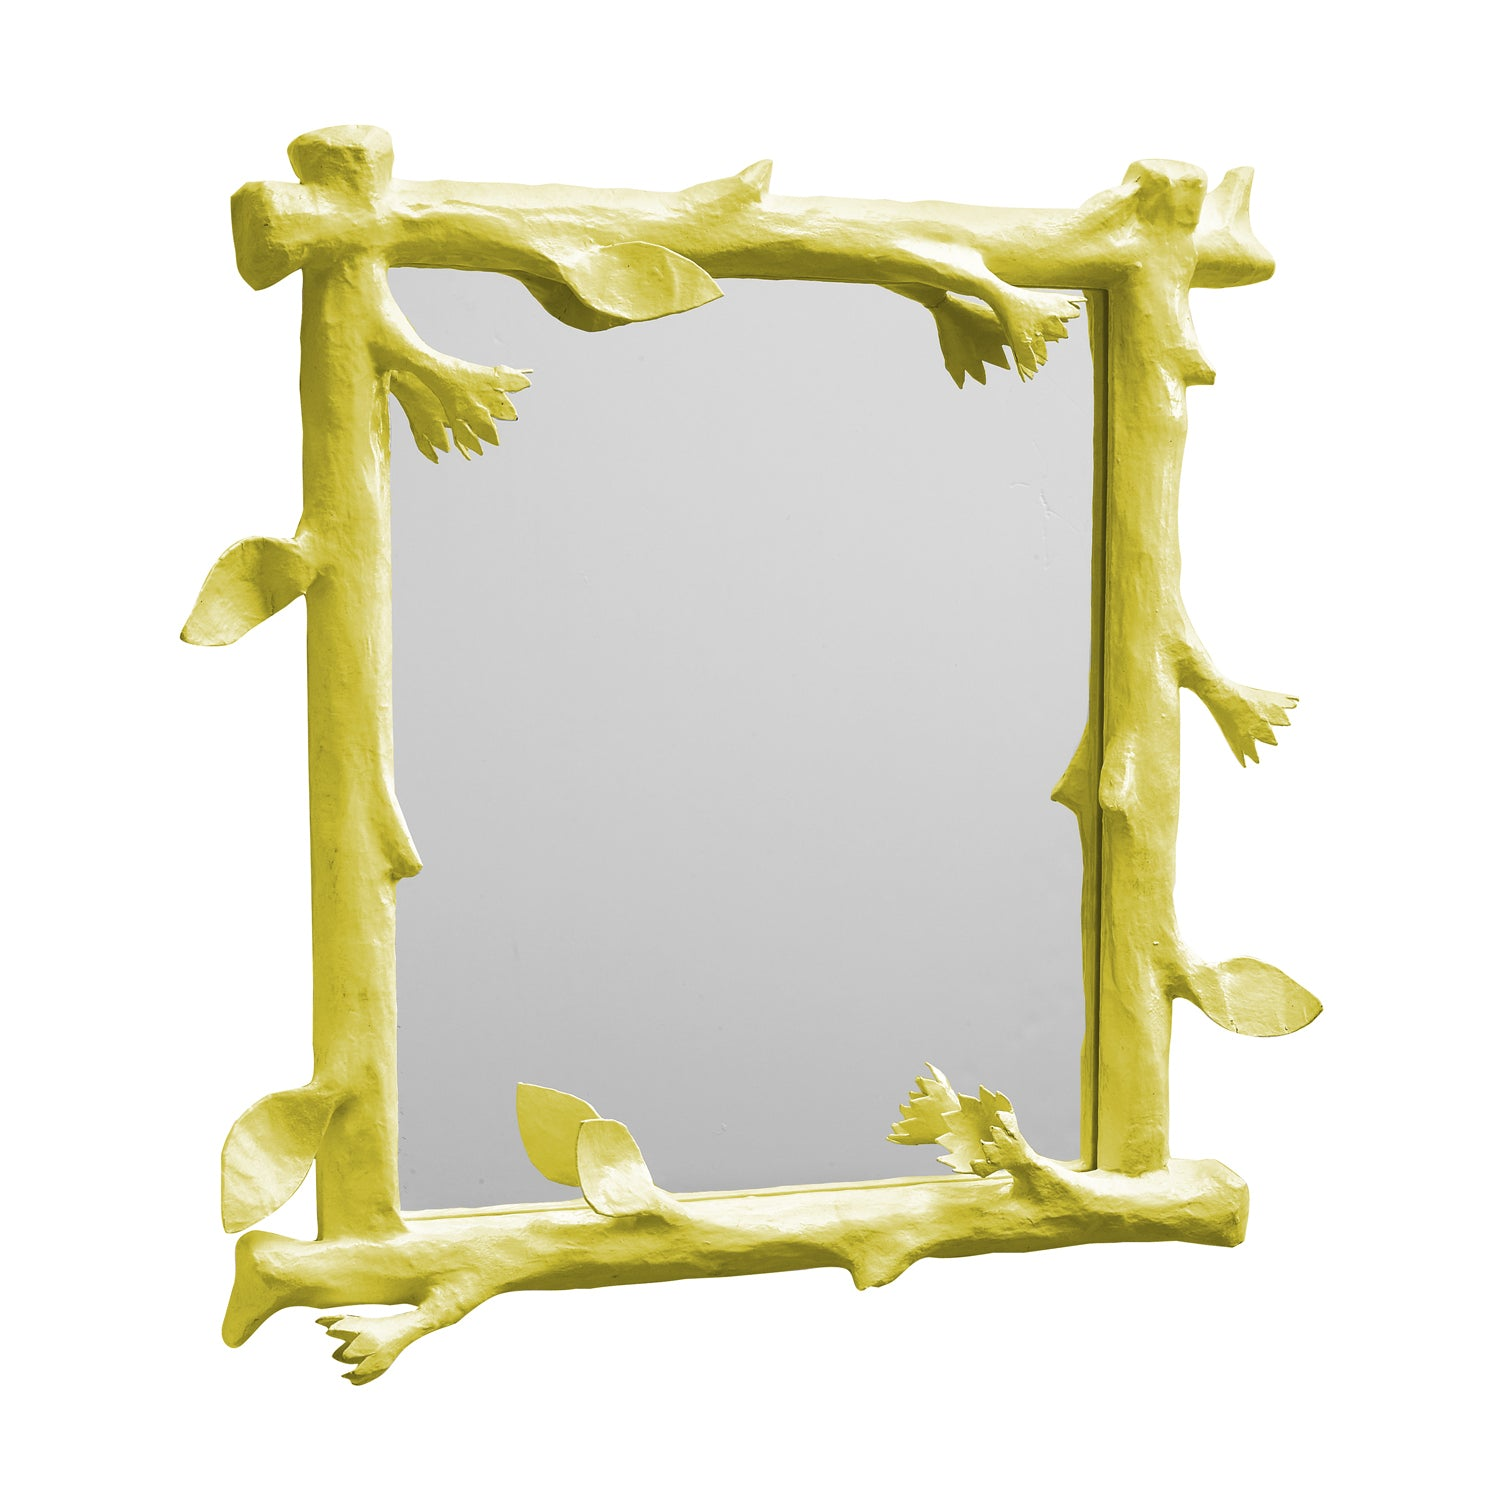 Funky Faux Bois Mirror with twiggy designs